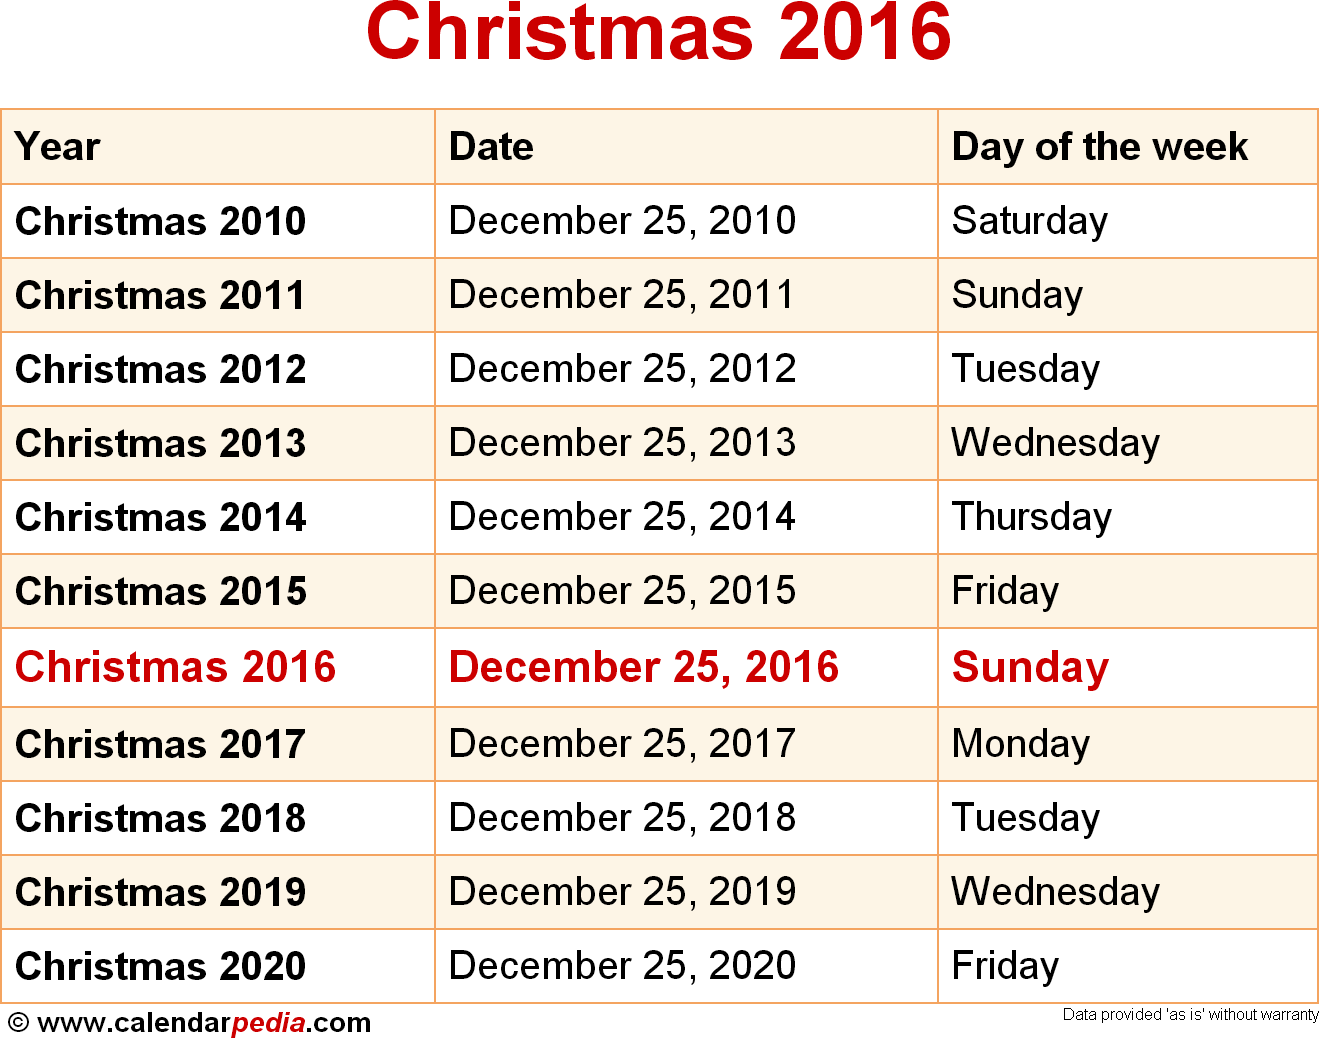 When is Christmas 2016 & 2017? Dates of Christmas